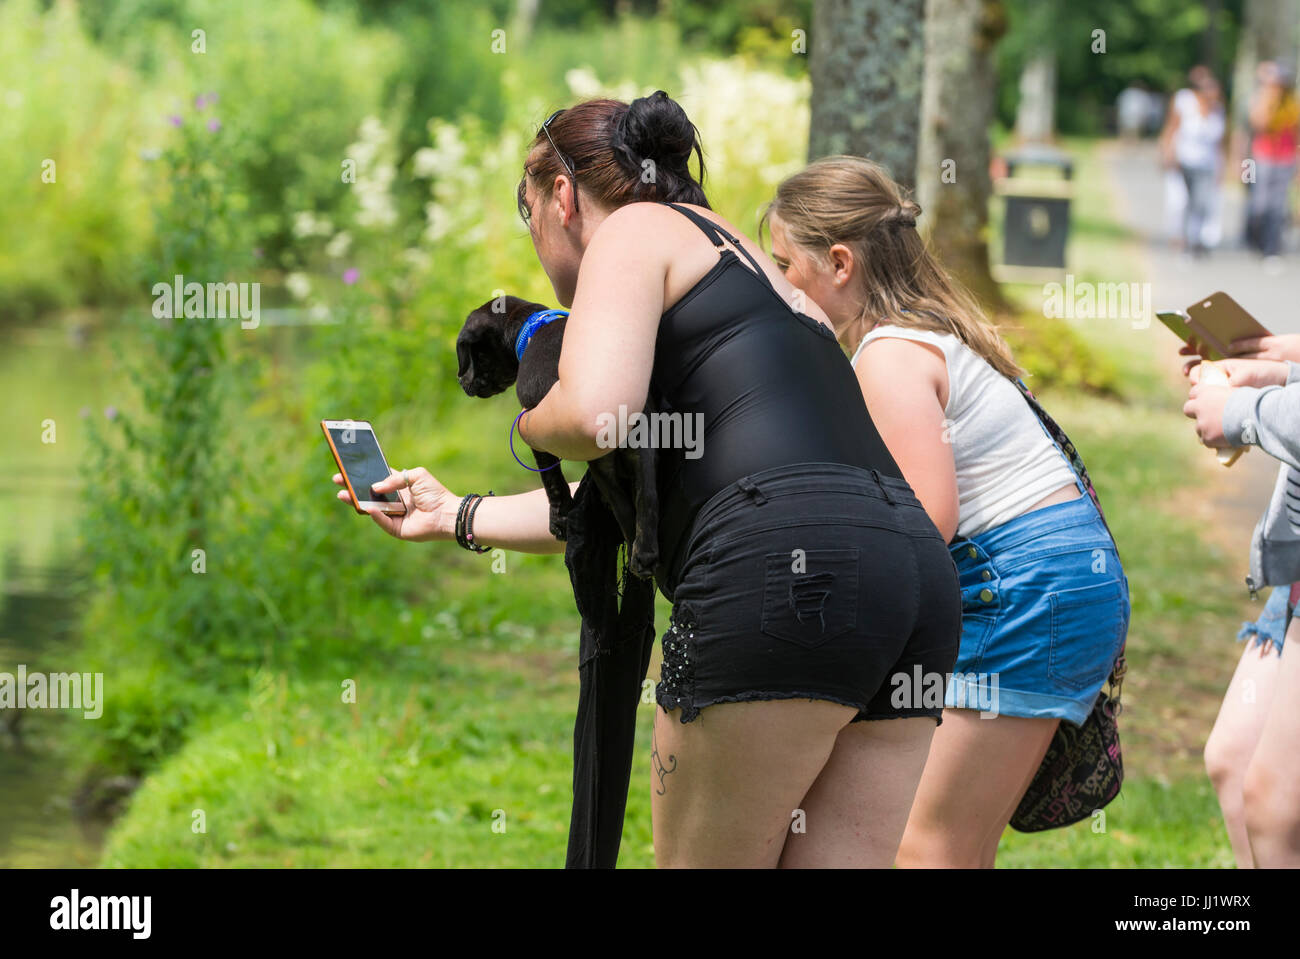 Woman taking photos of ducks with a smartphone. - Stock Image